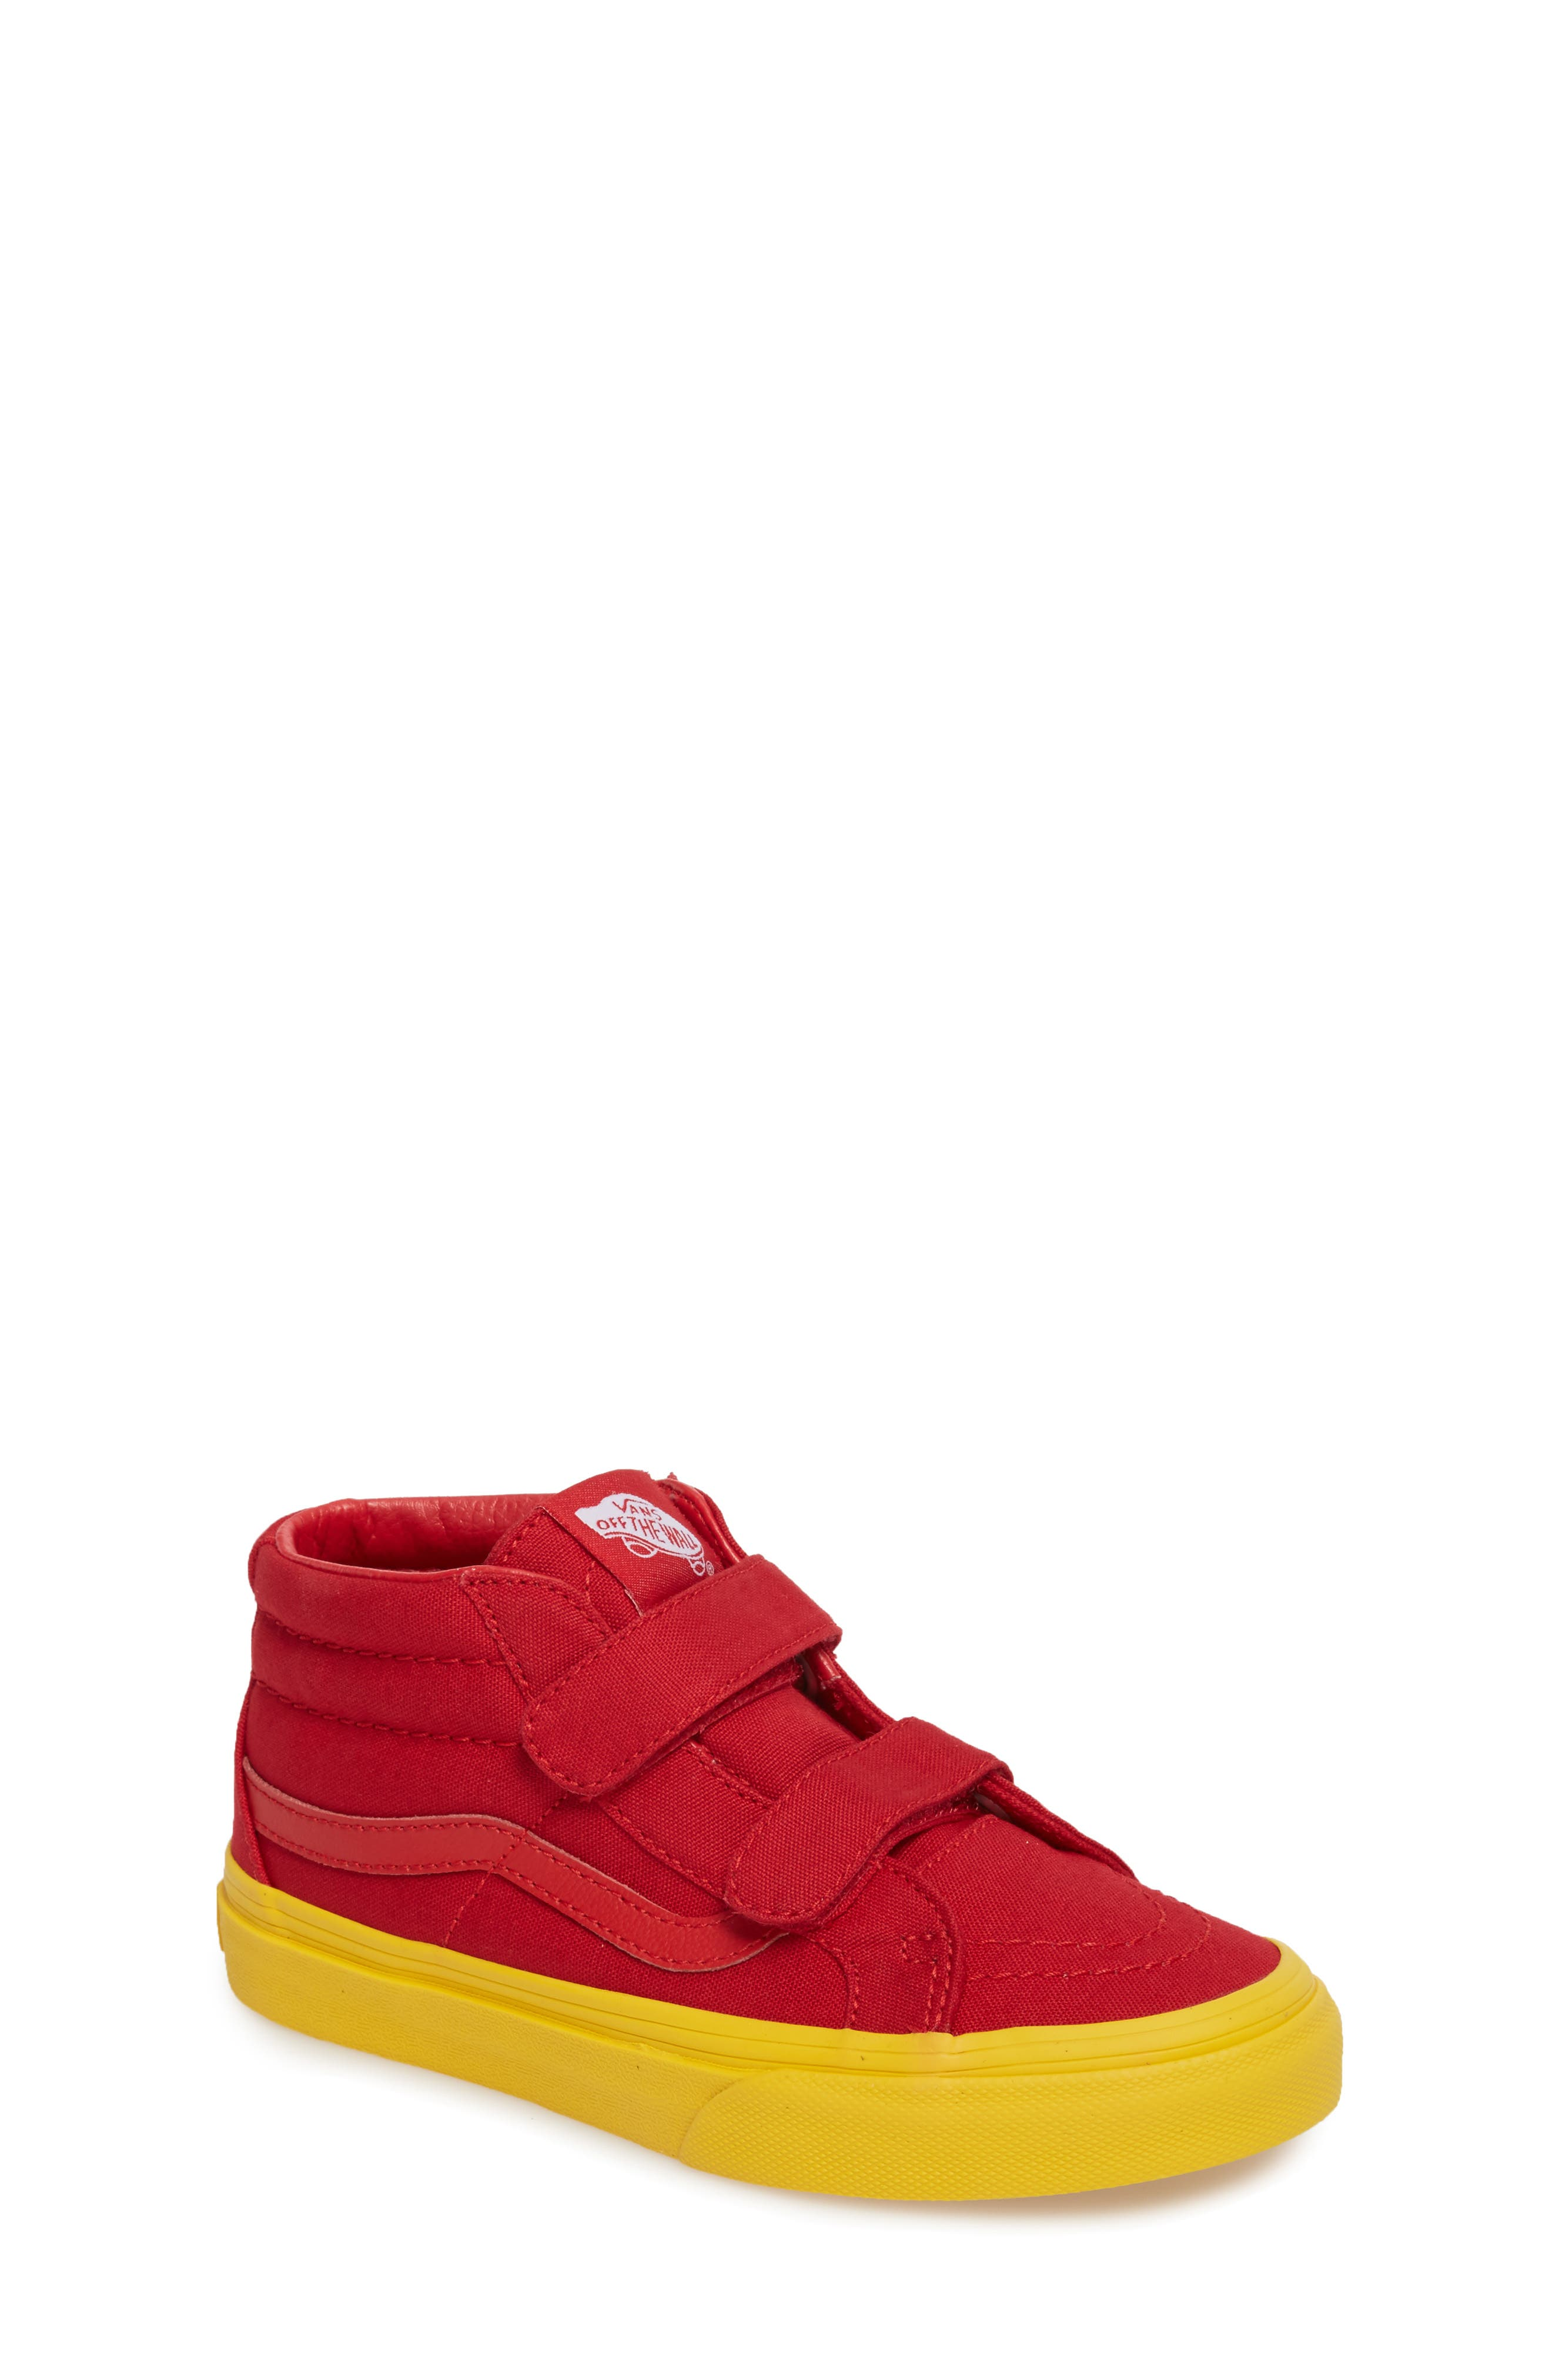 Sk8-Mid Reissue Sneaker,                             Main thumbnail 1, color,                             Red/ Gold Cosplay